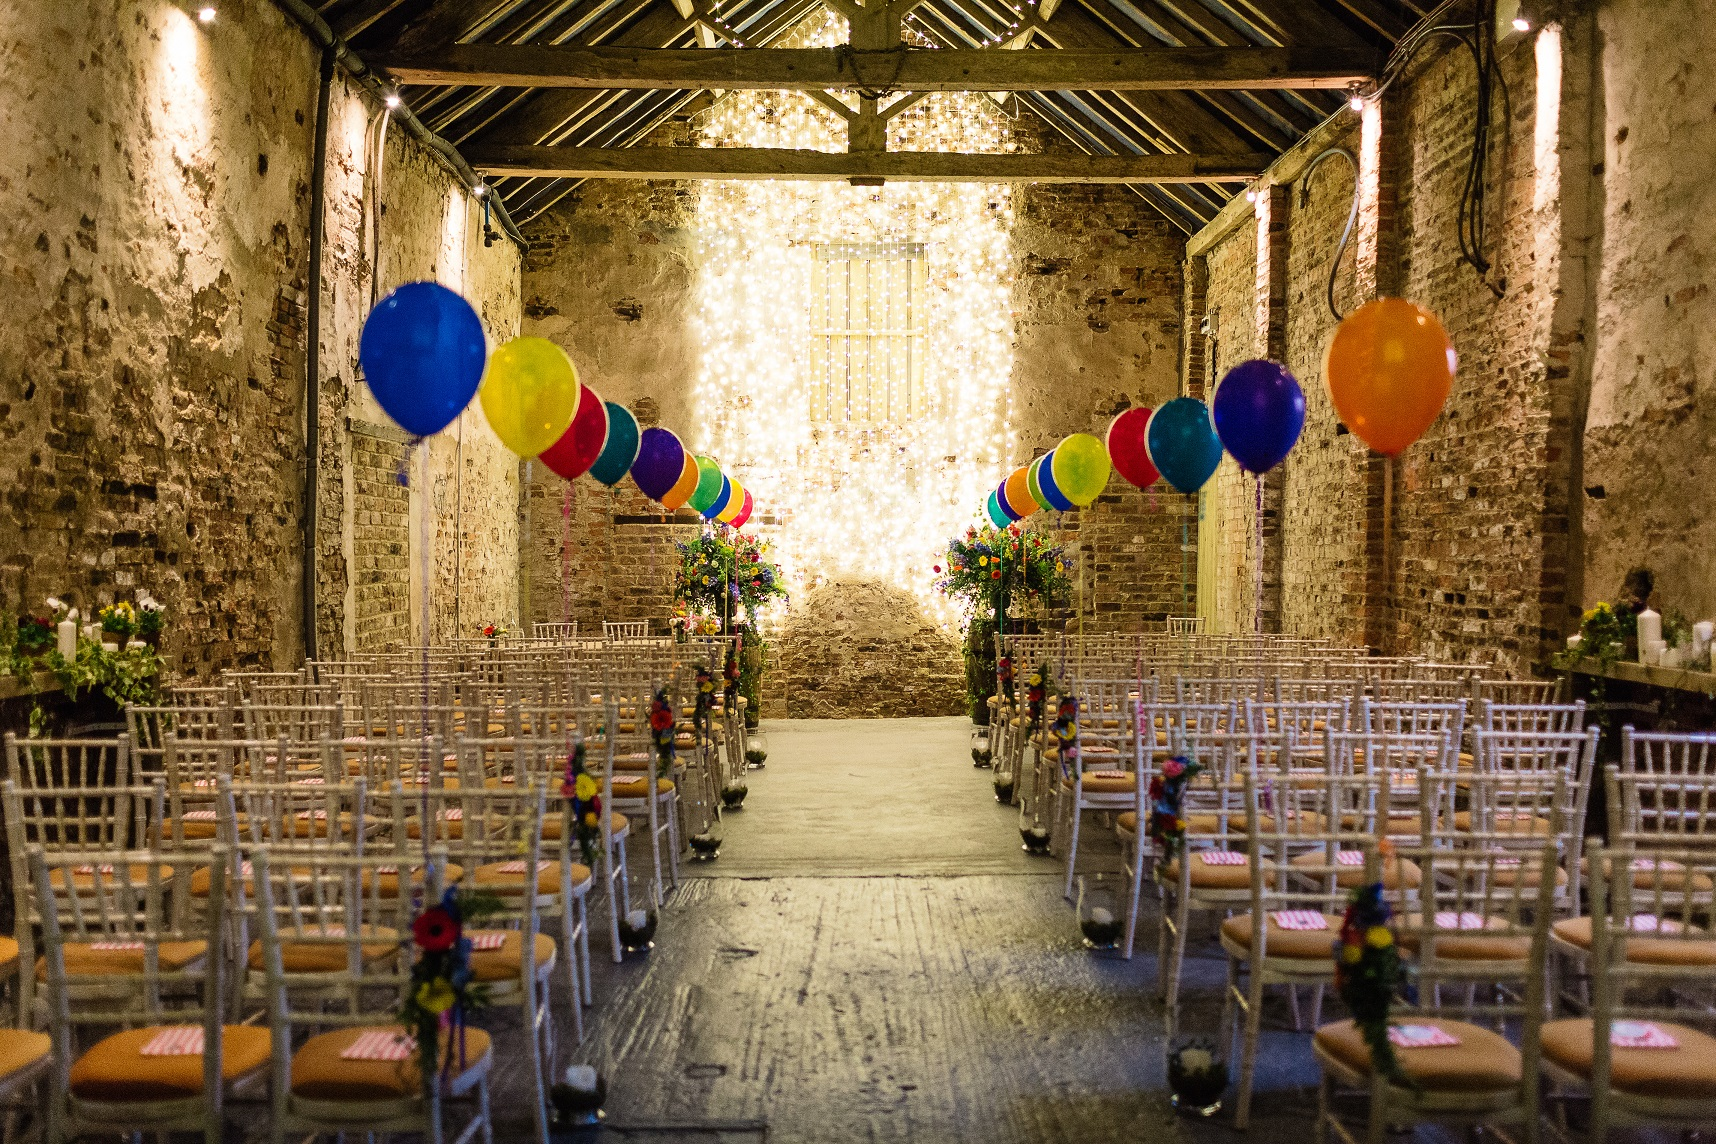 Balloon Barn at The Normans Photo by www.pauljosephphotography.co.uk